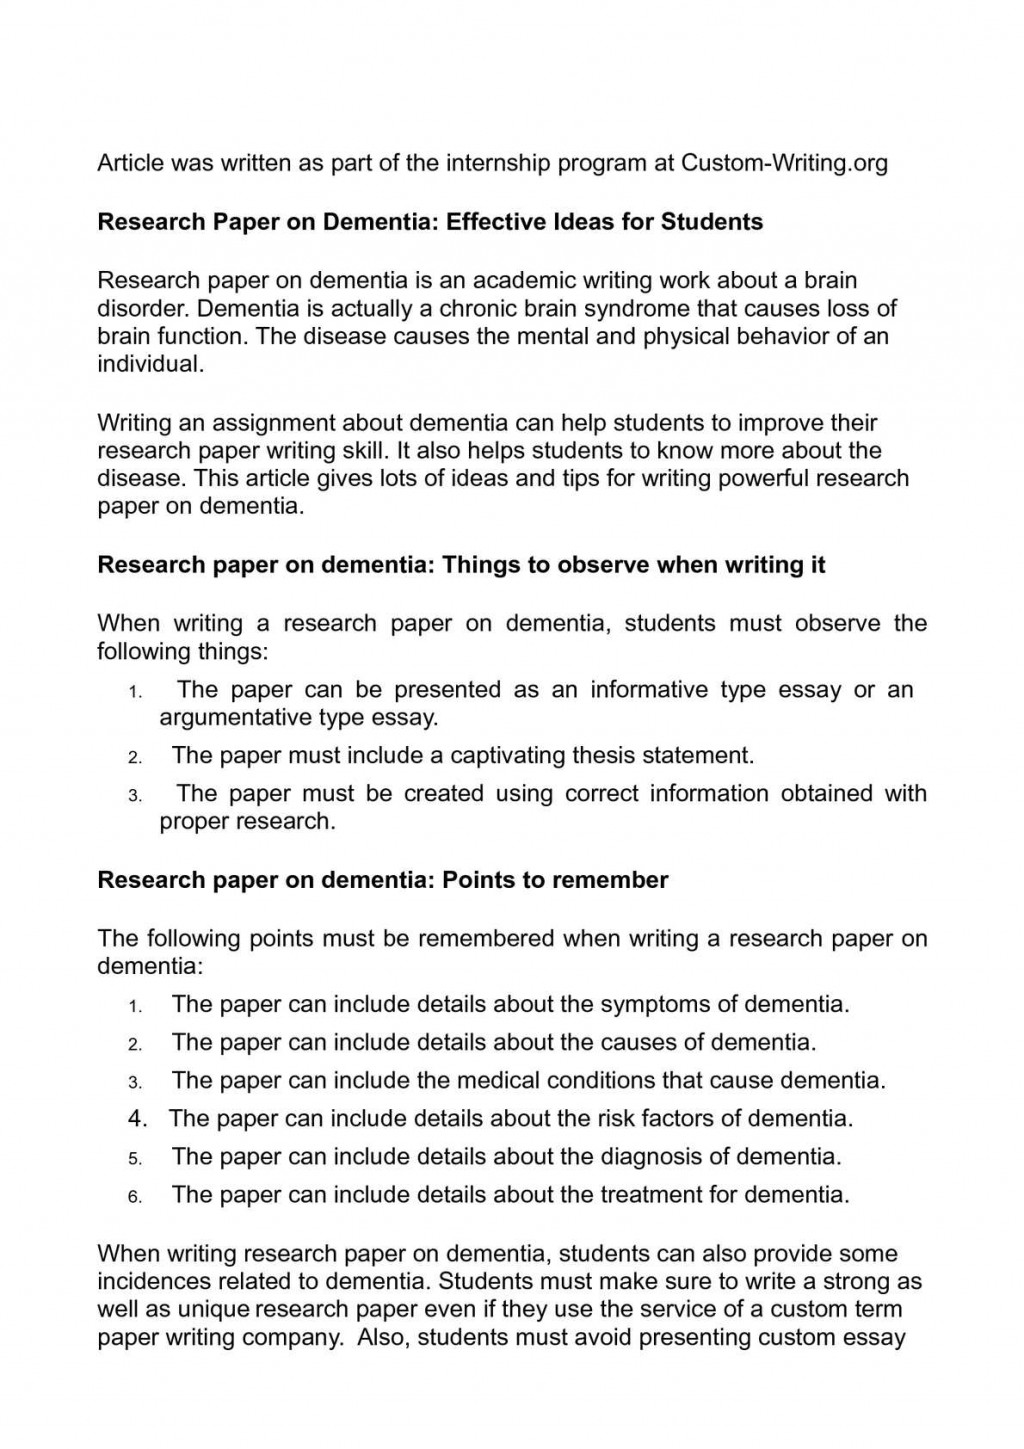 009 Research Paper Unique Ideas Imposing Titles For High School Students In Psychology Biology Large